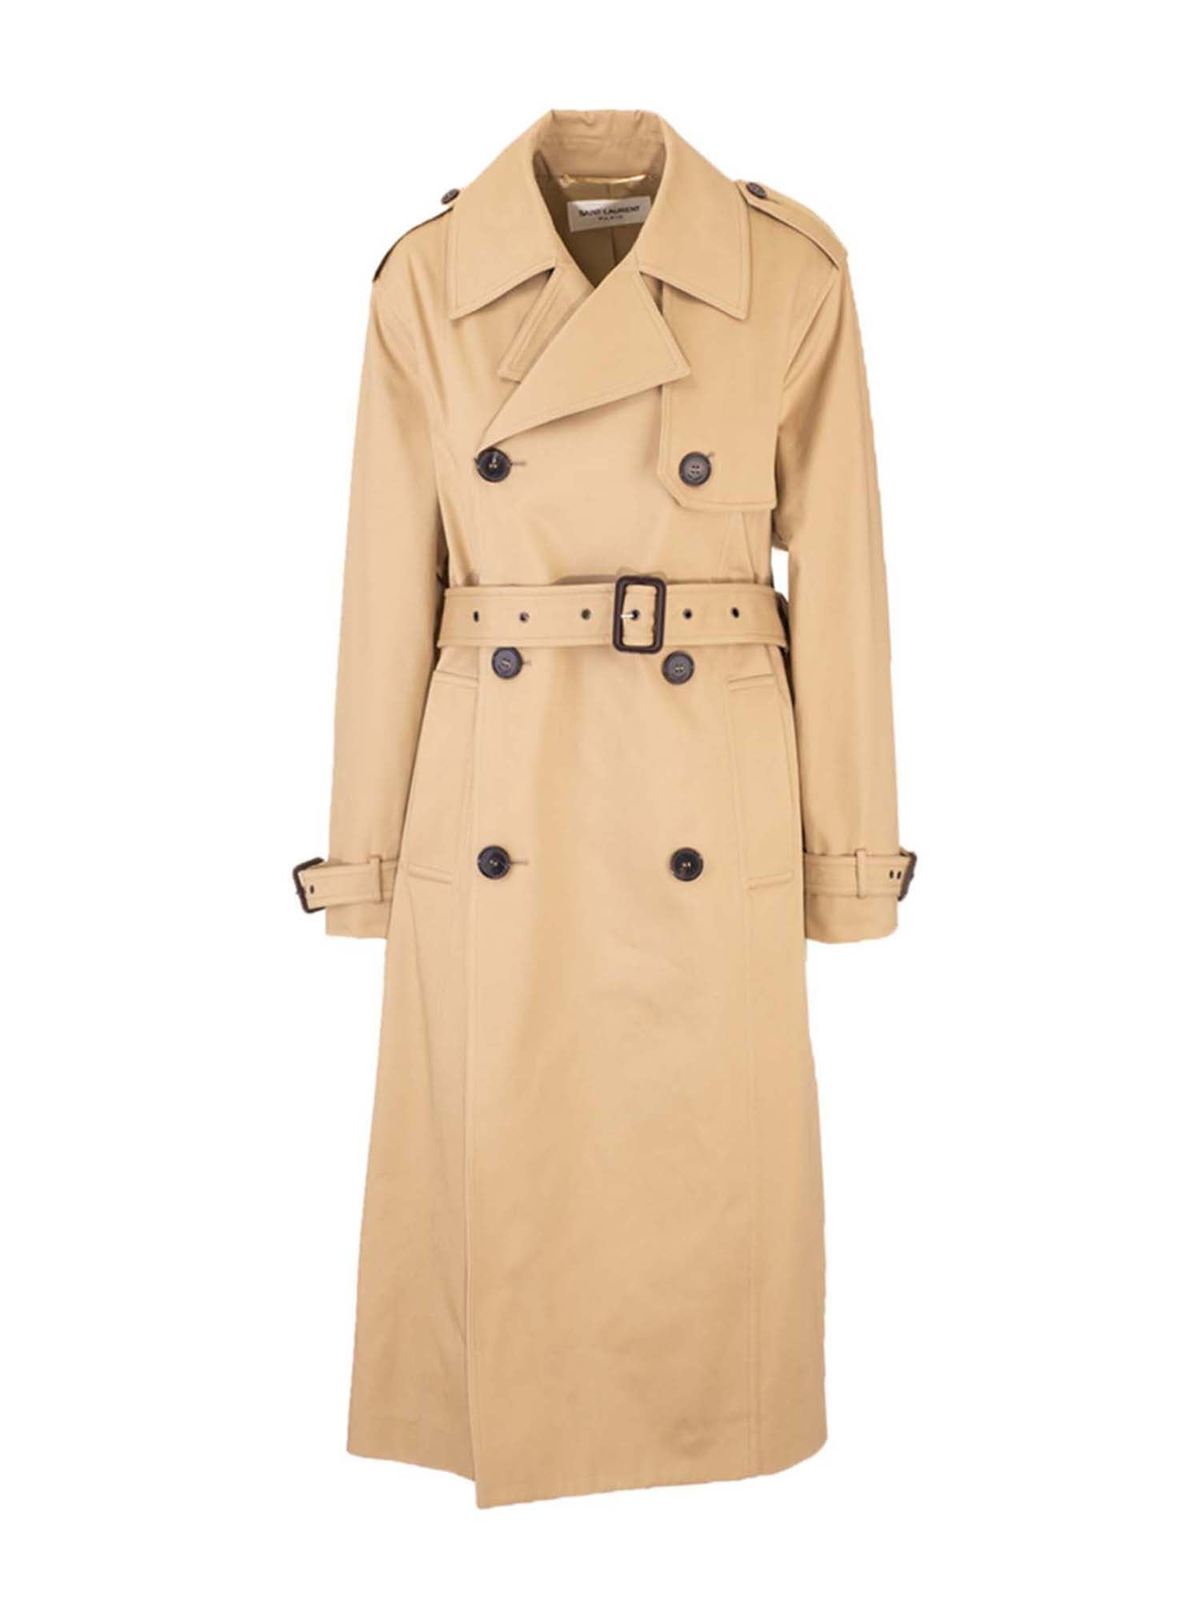 Saint Laurent DOUBLE-BREASTED TWILL TRENCH COAT IN BEIGE